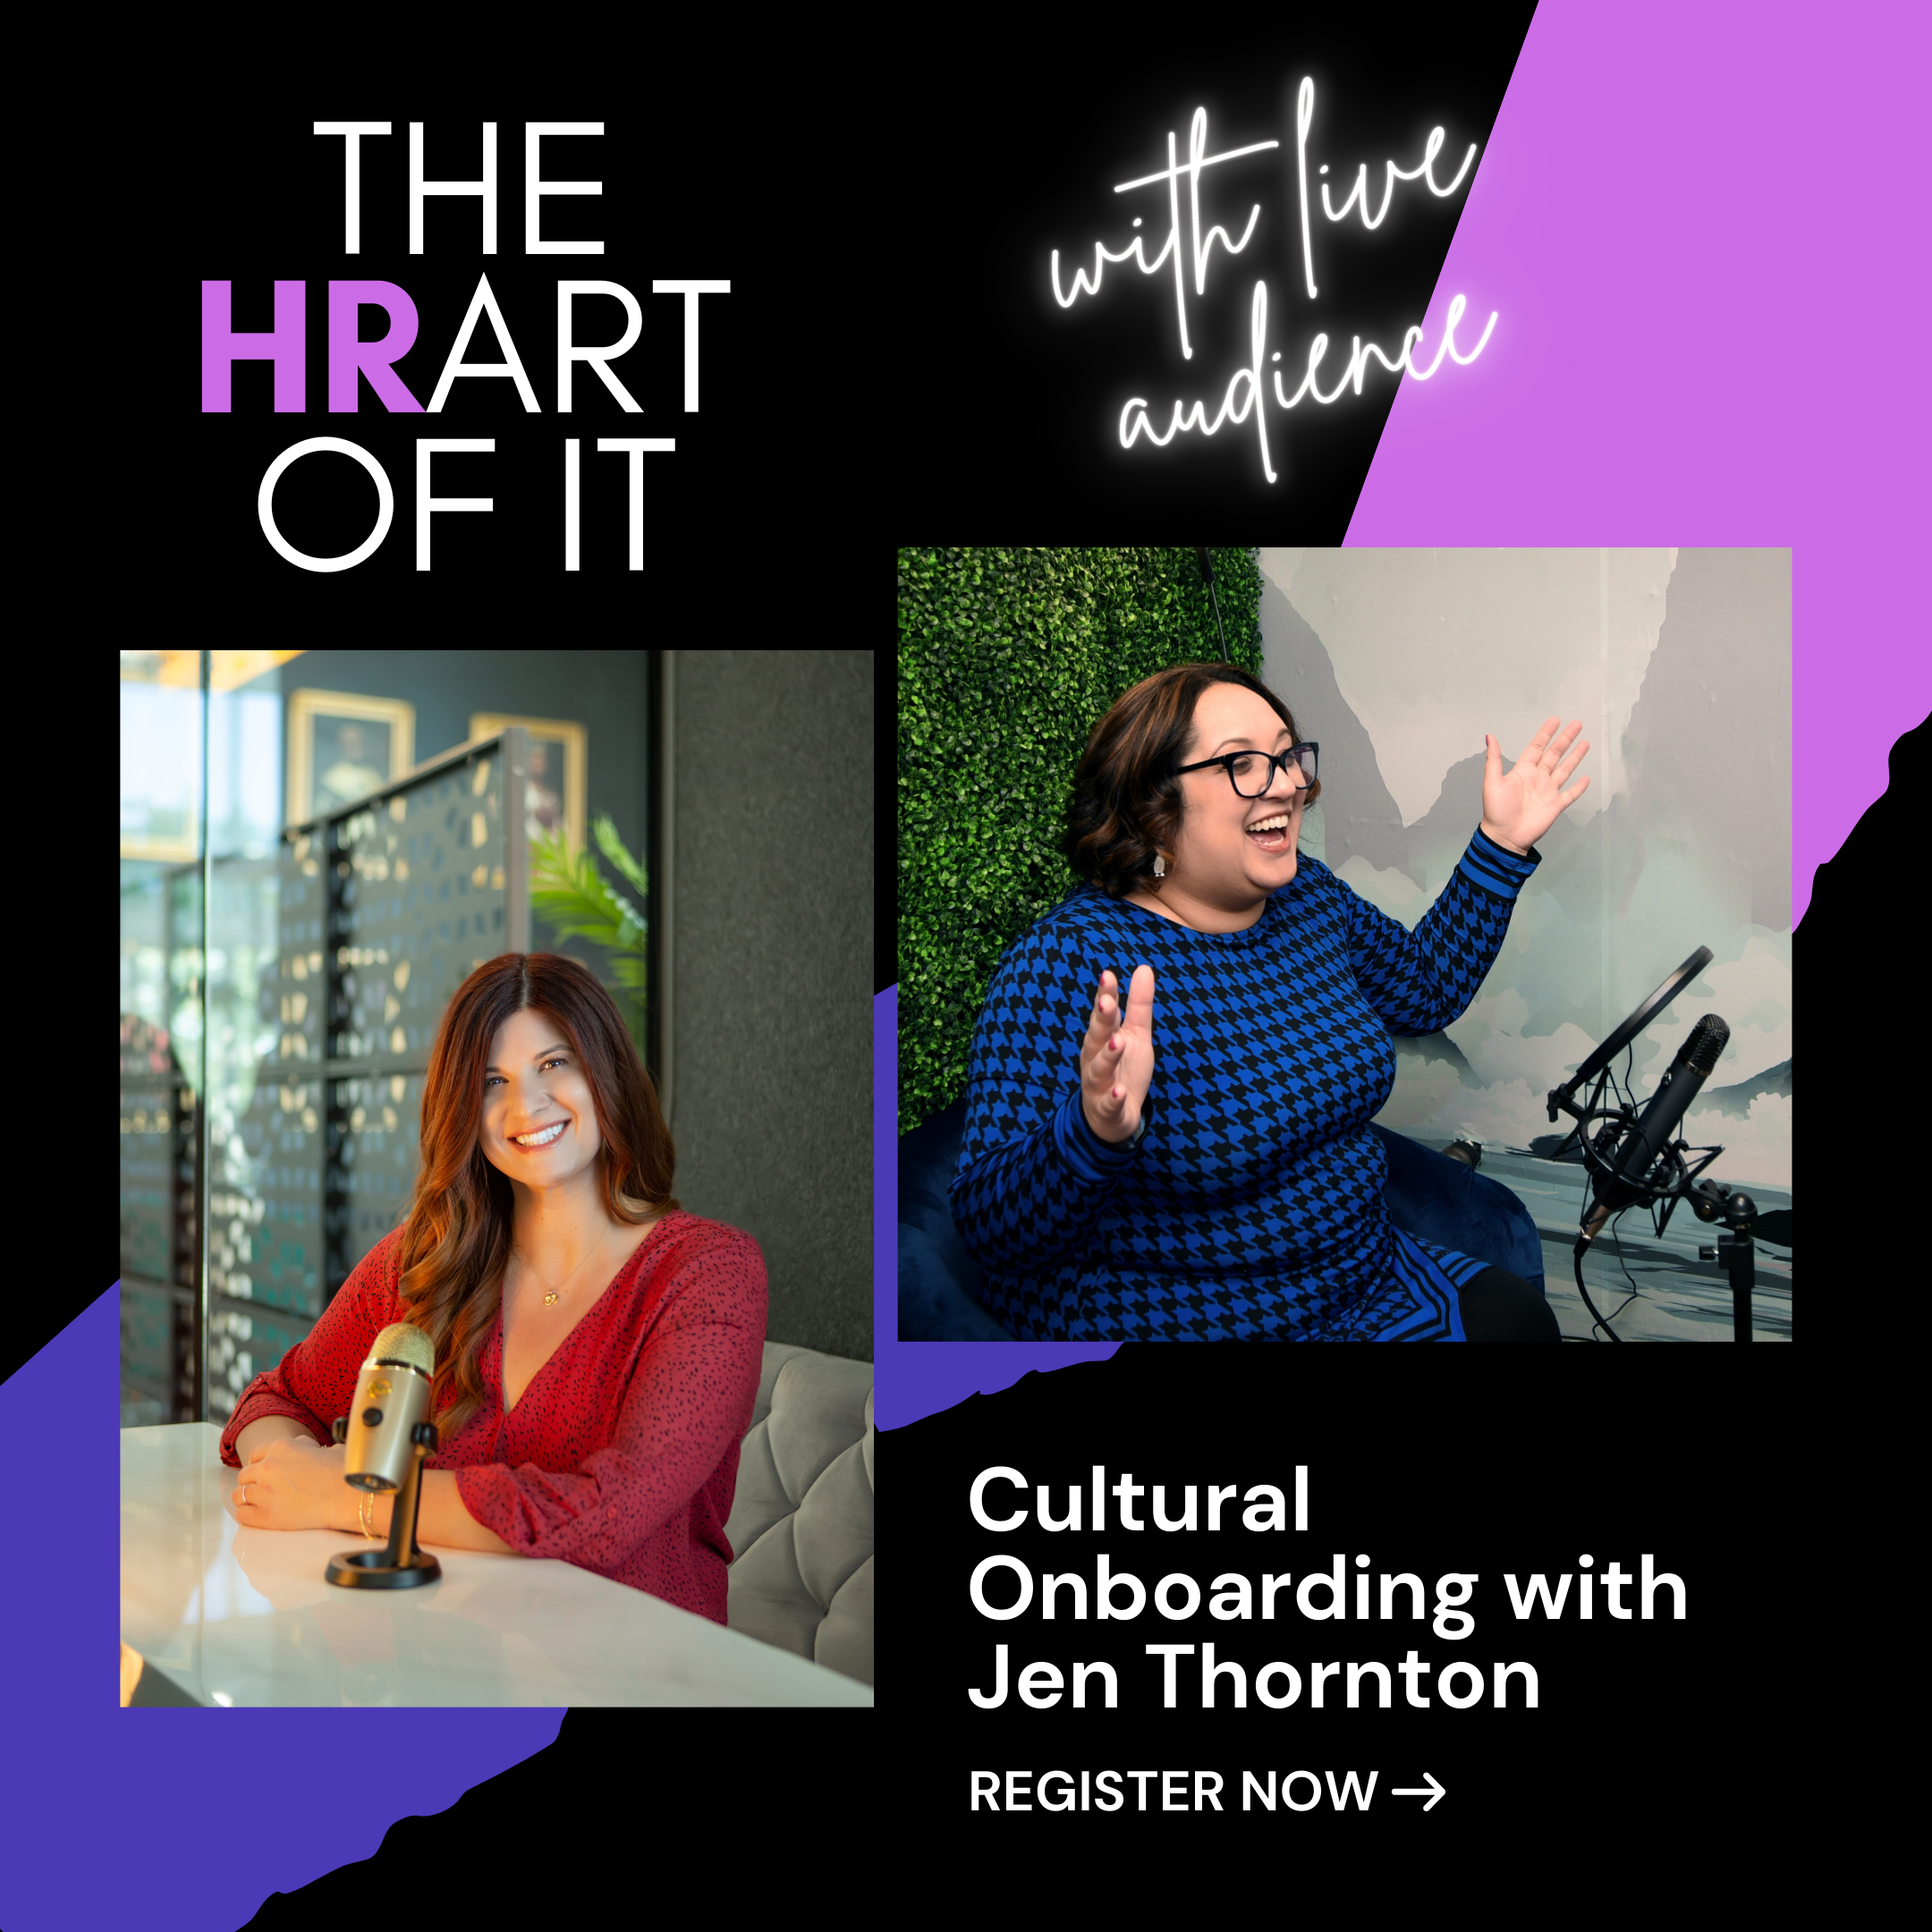 Cultural Onboarding with Jen Thornton